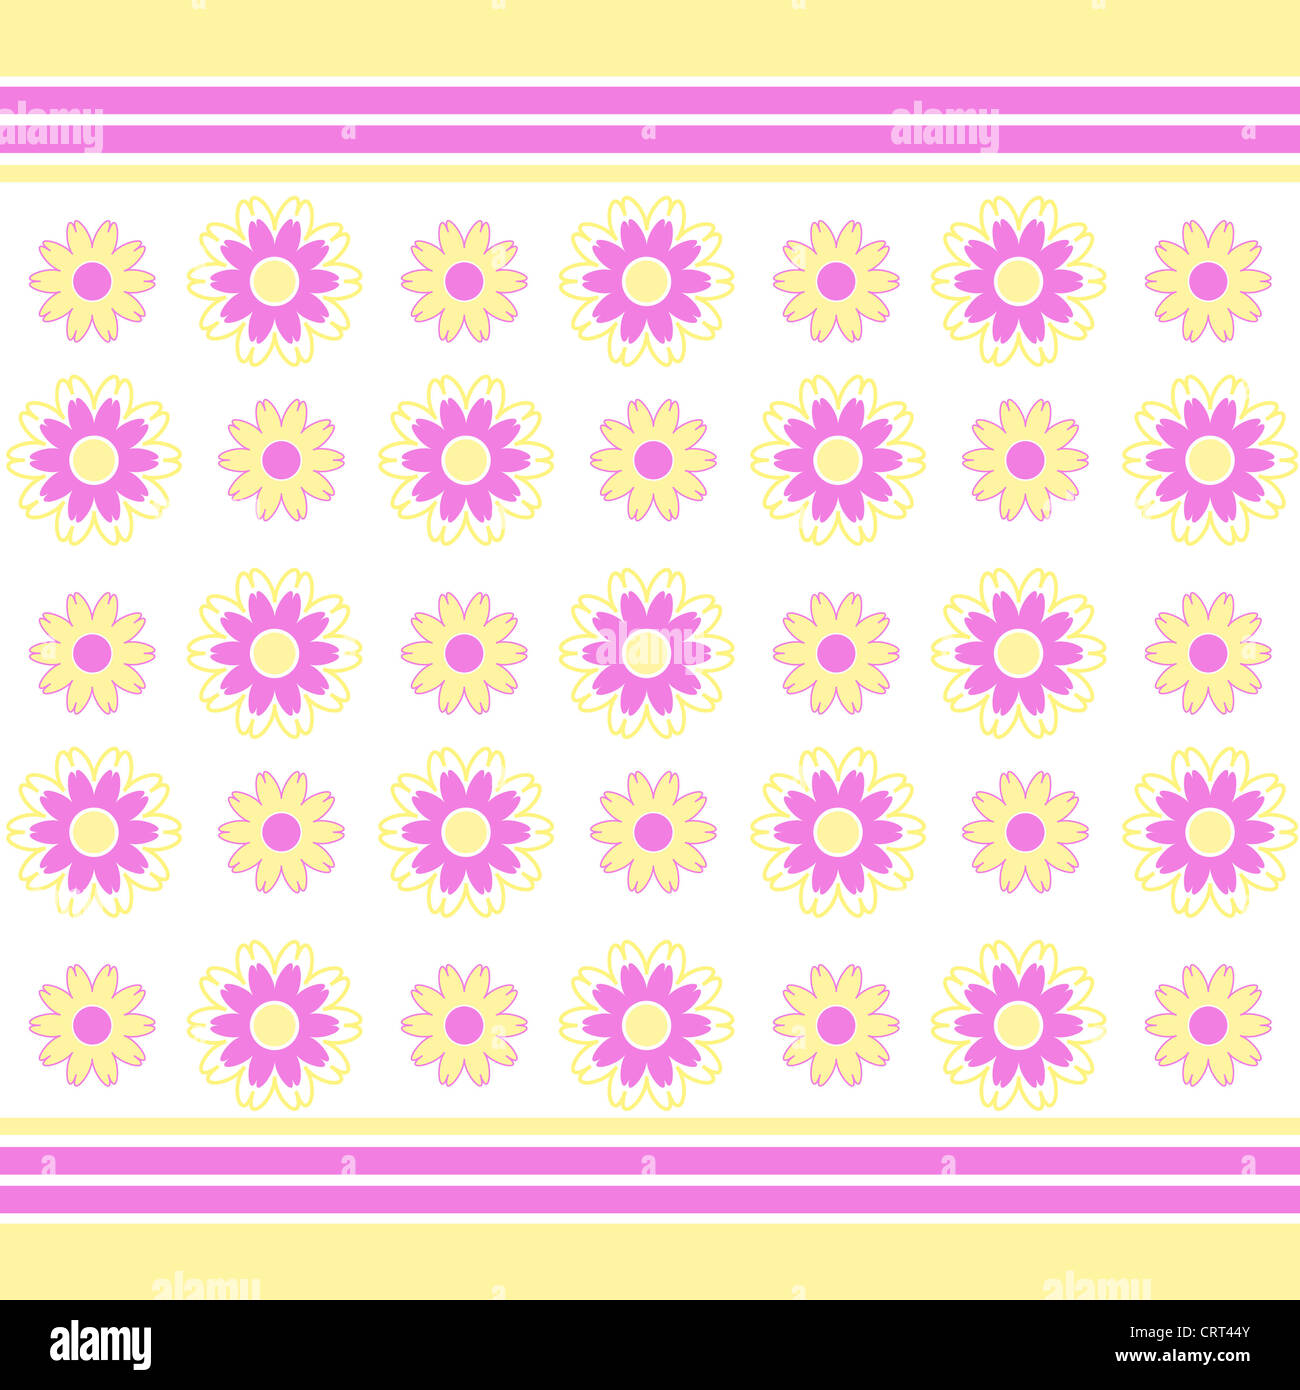 Flowers and stripes pattern in yellow and purple Stock Photo